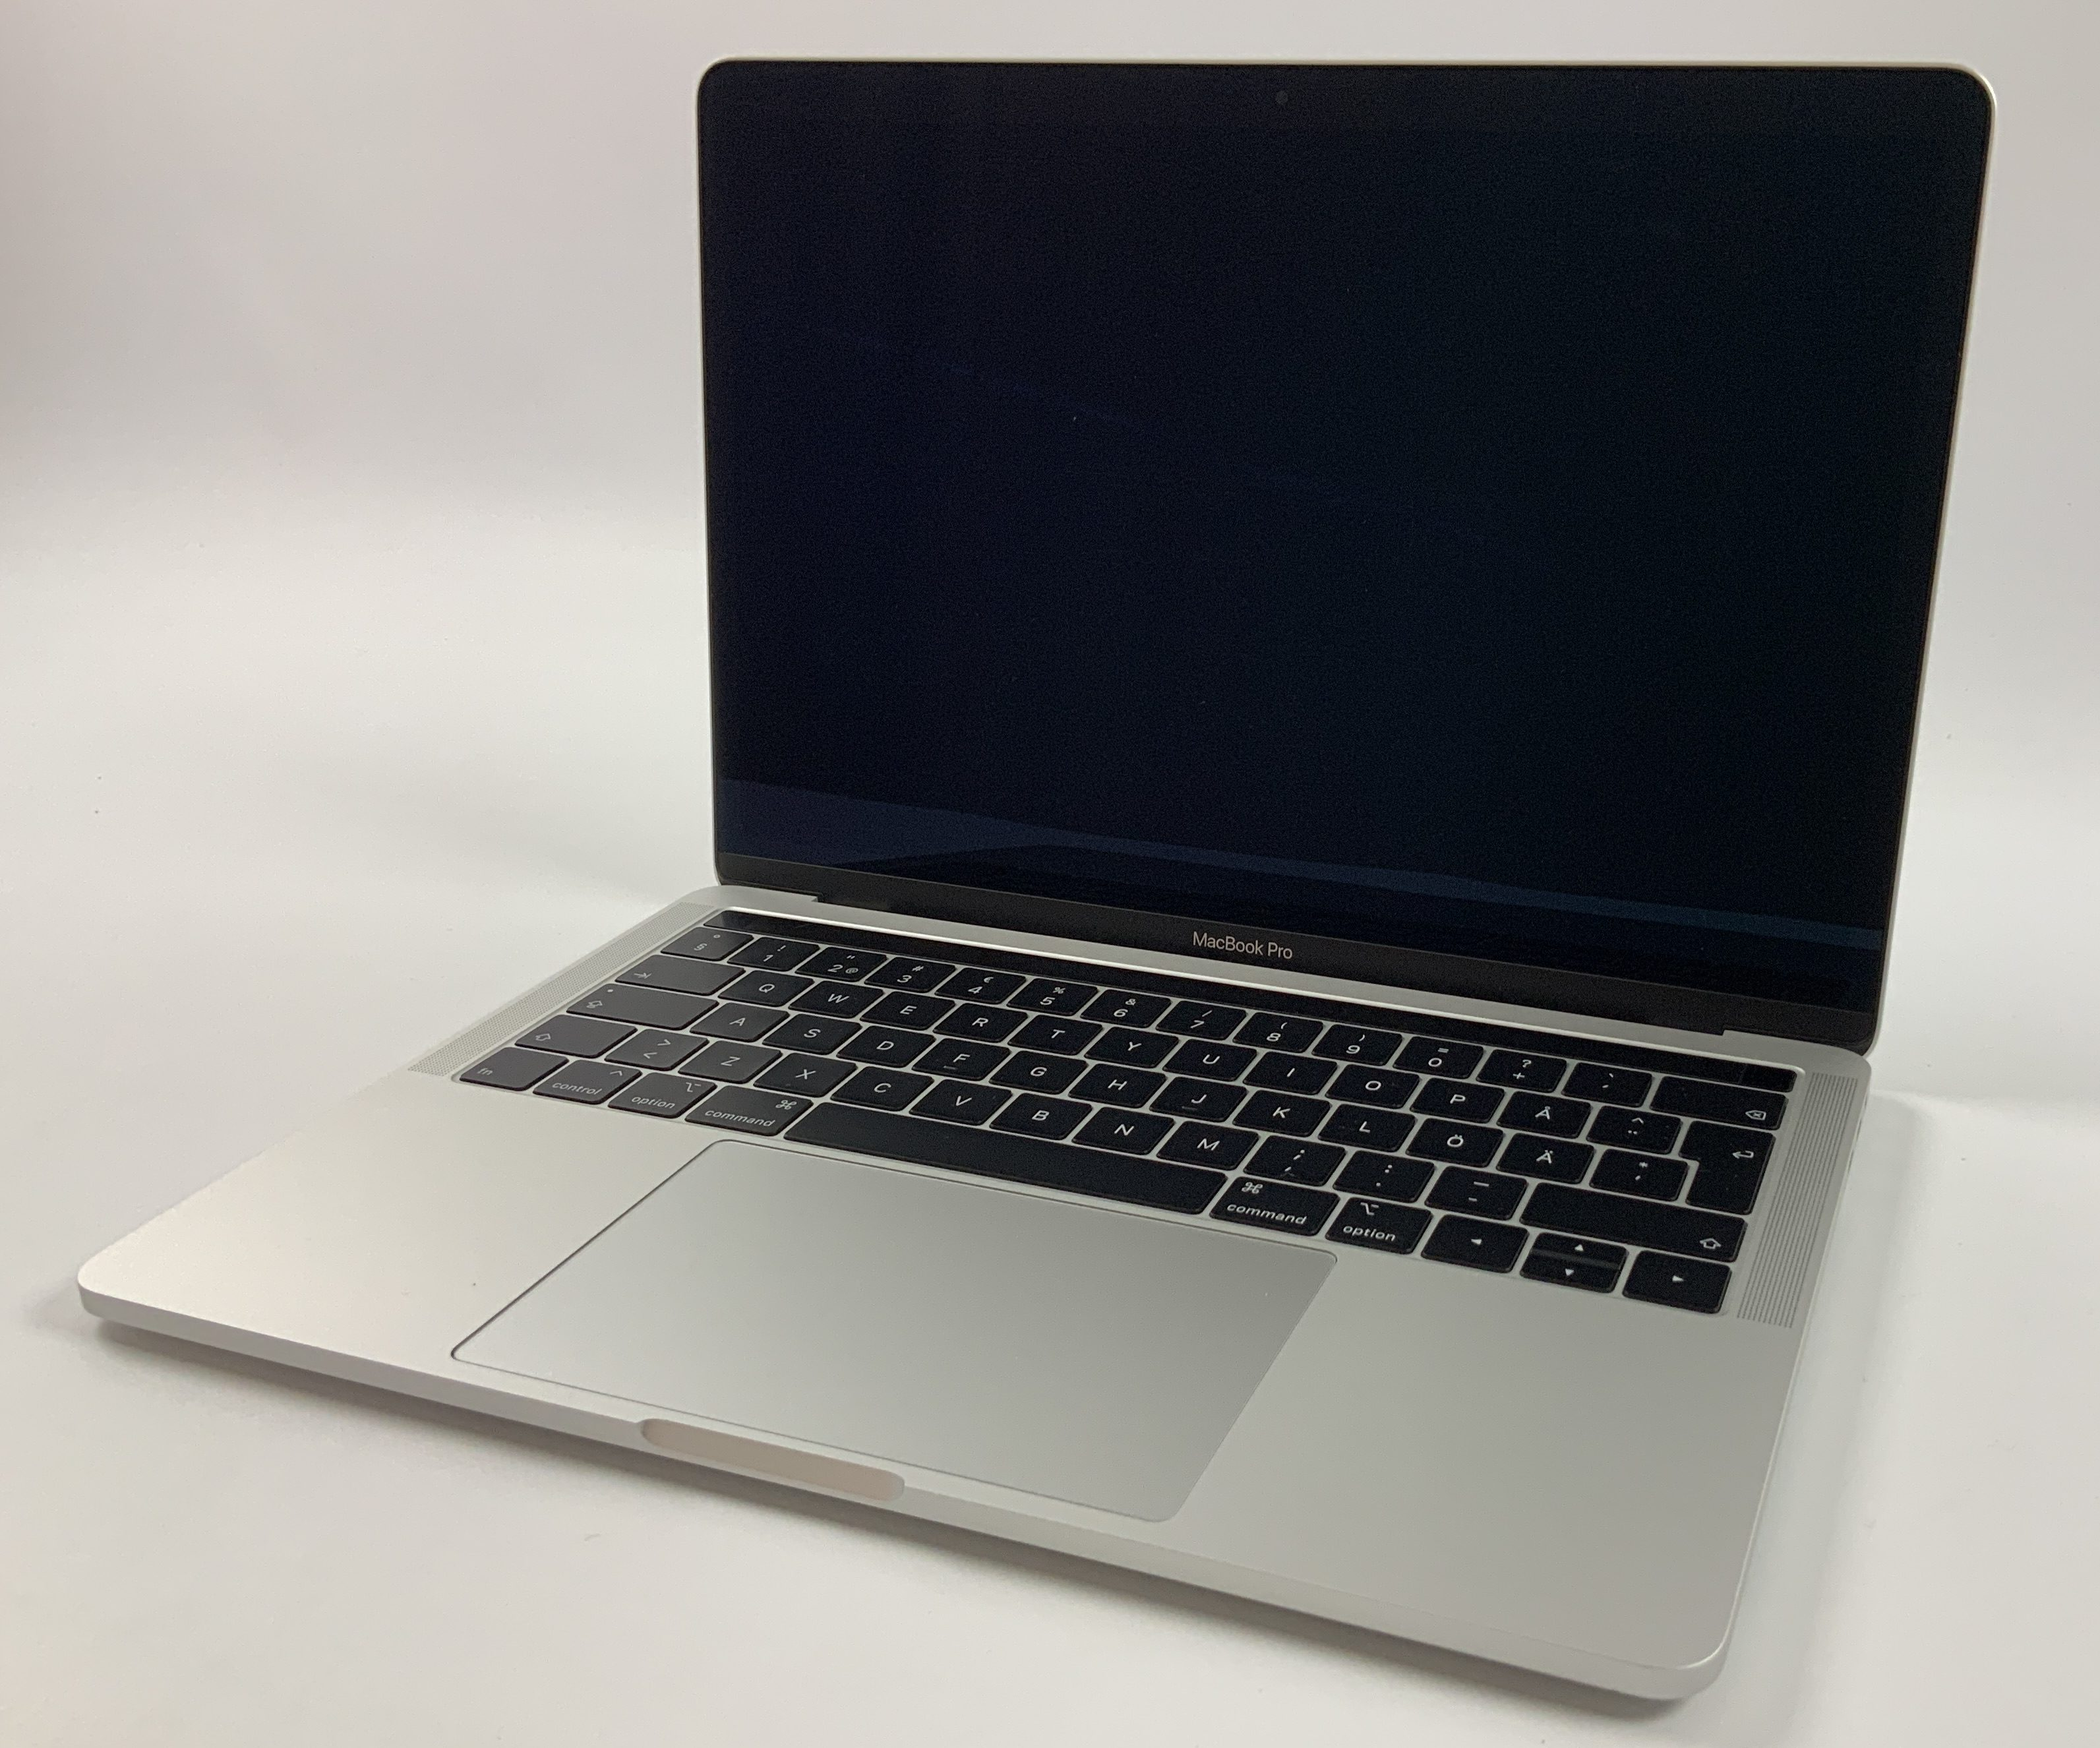 "MacBook Pro 13"" 4TBT Mid 2018 (Intel Quad-Core i5 2.3 GHz 8 GB RAM 512 GB SSD), Silver, Intel Quad-Core i5 2.3 GHz, 8 GB RAM, 512 GB SSD, image 1"